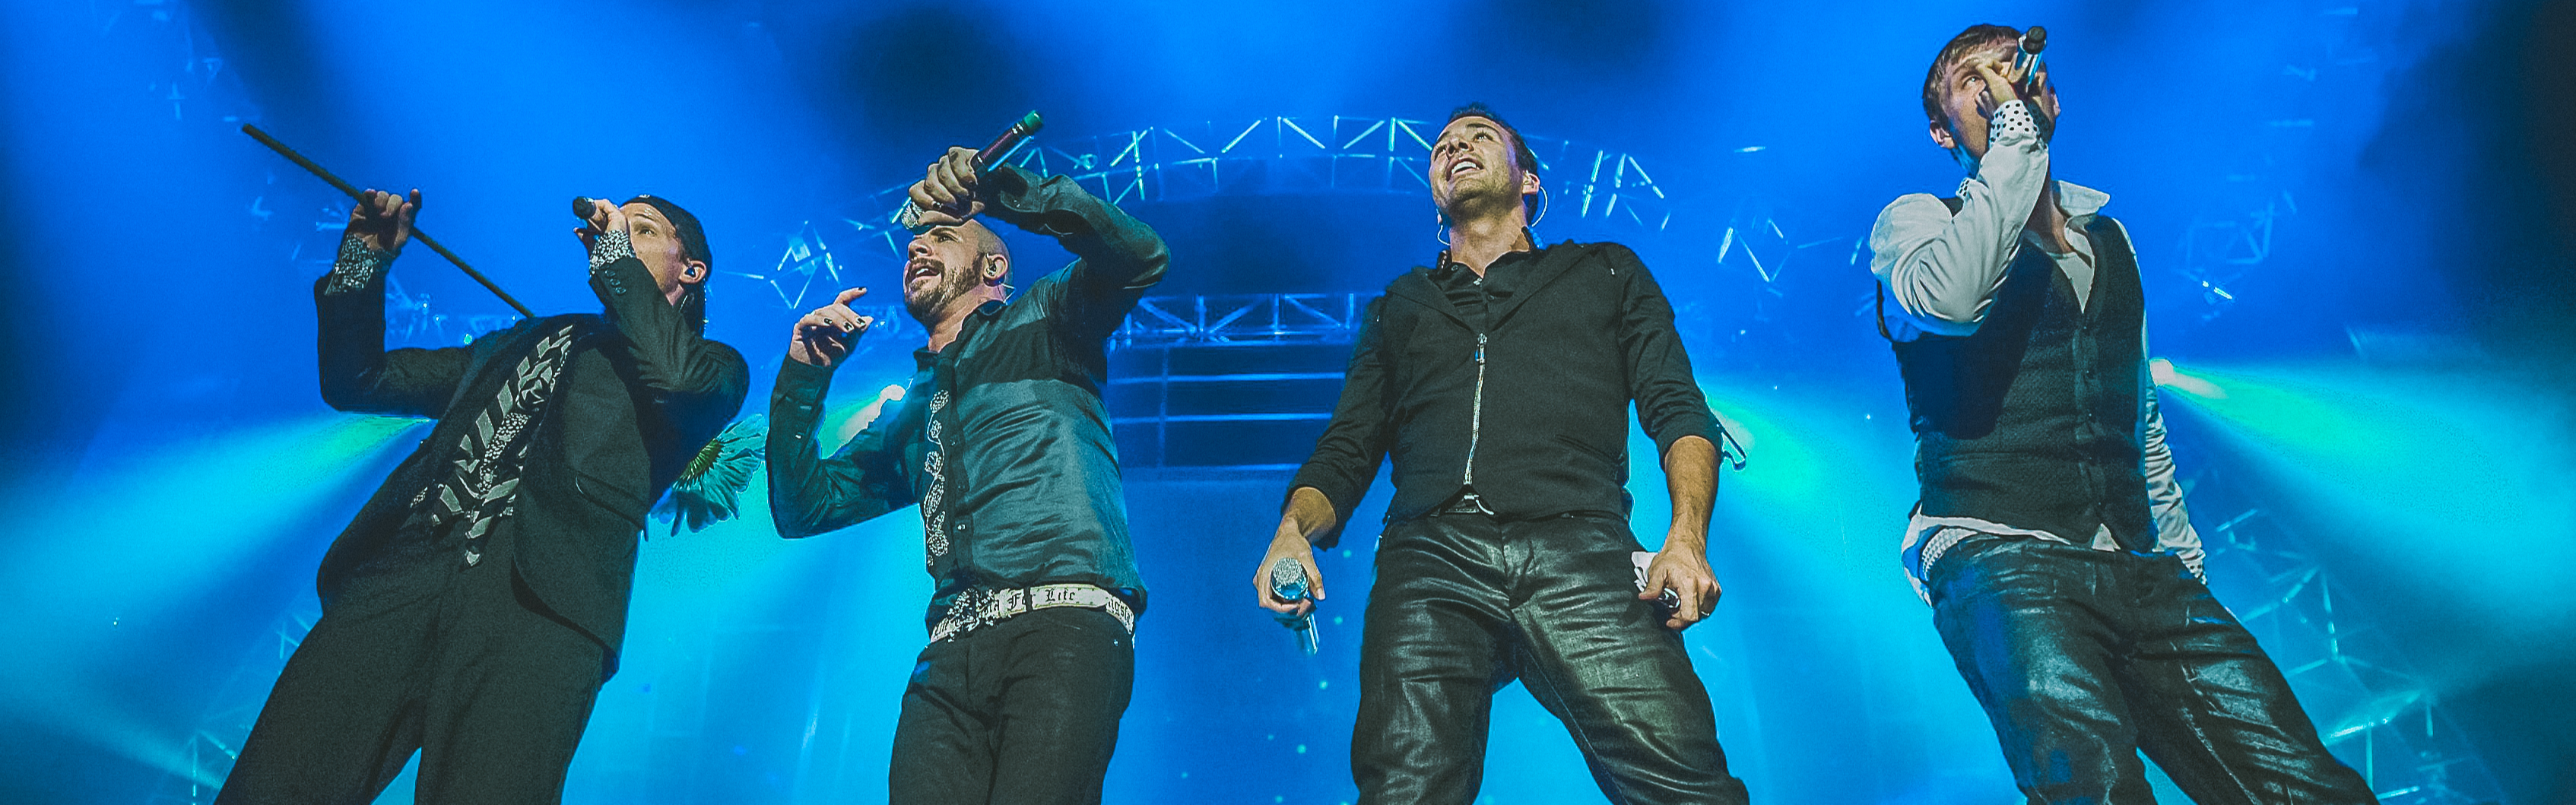 Backstreet boys header